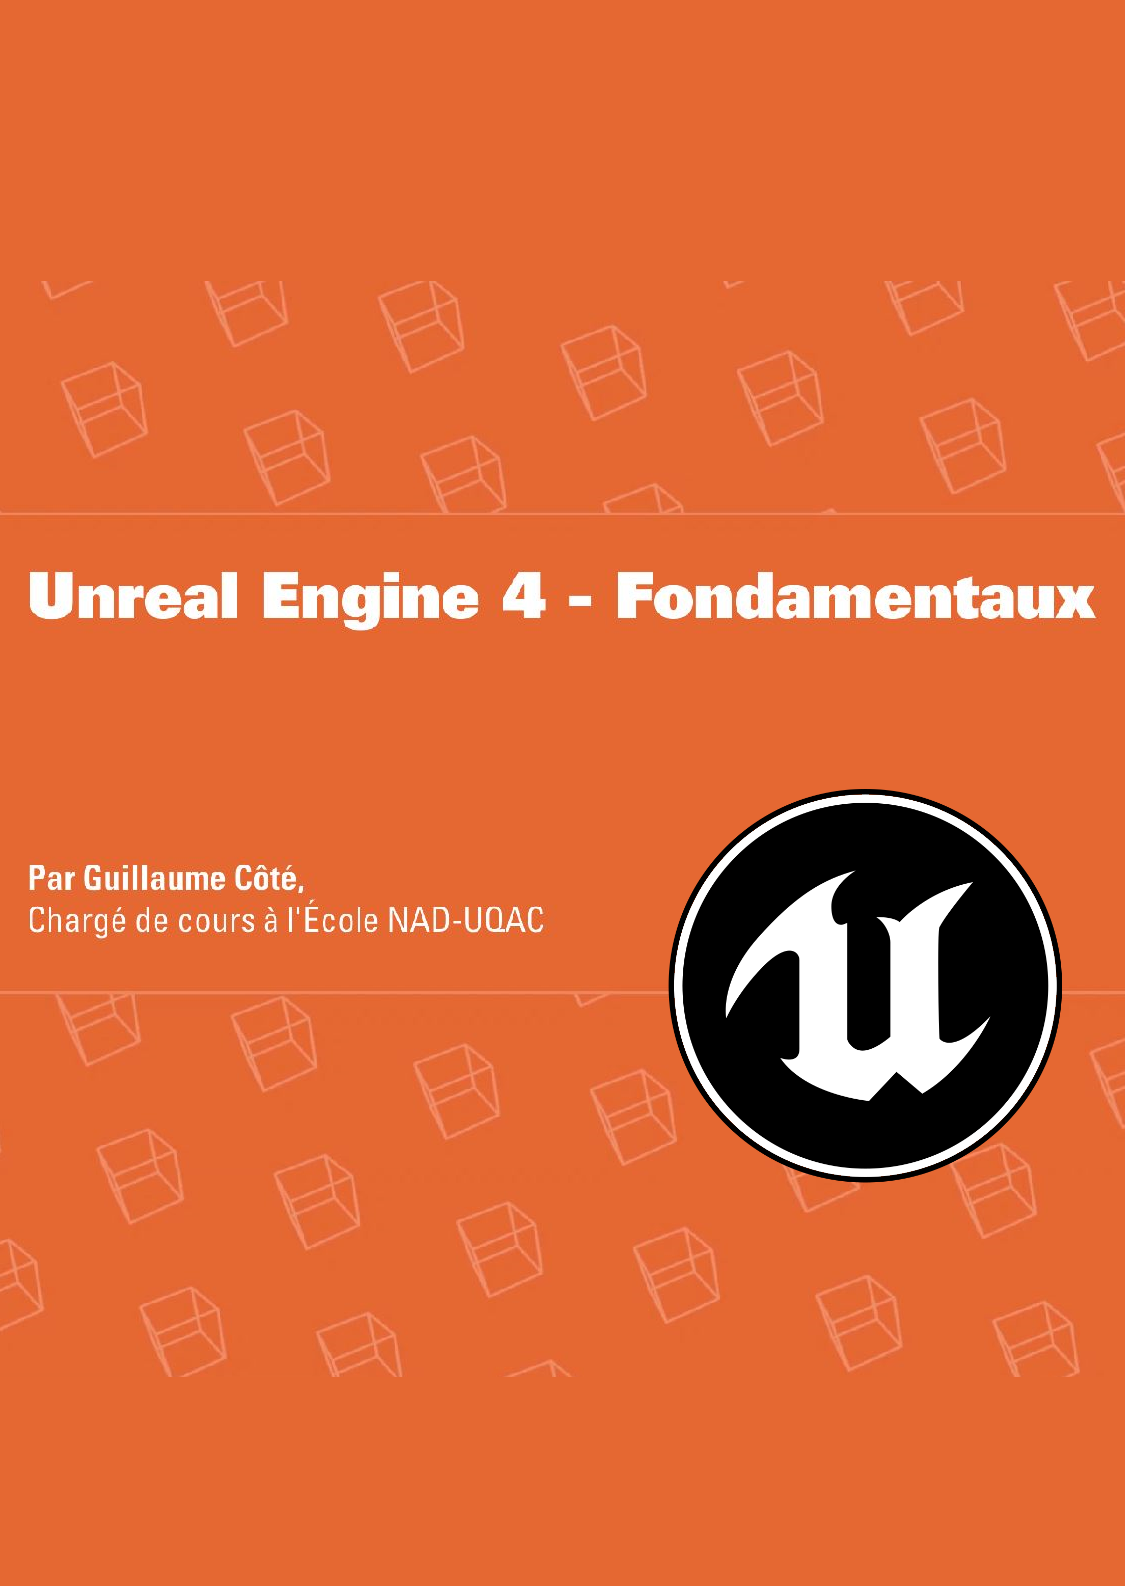 Unreal Engine 4, Fondamentaux